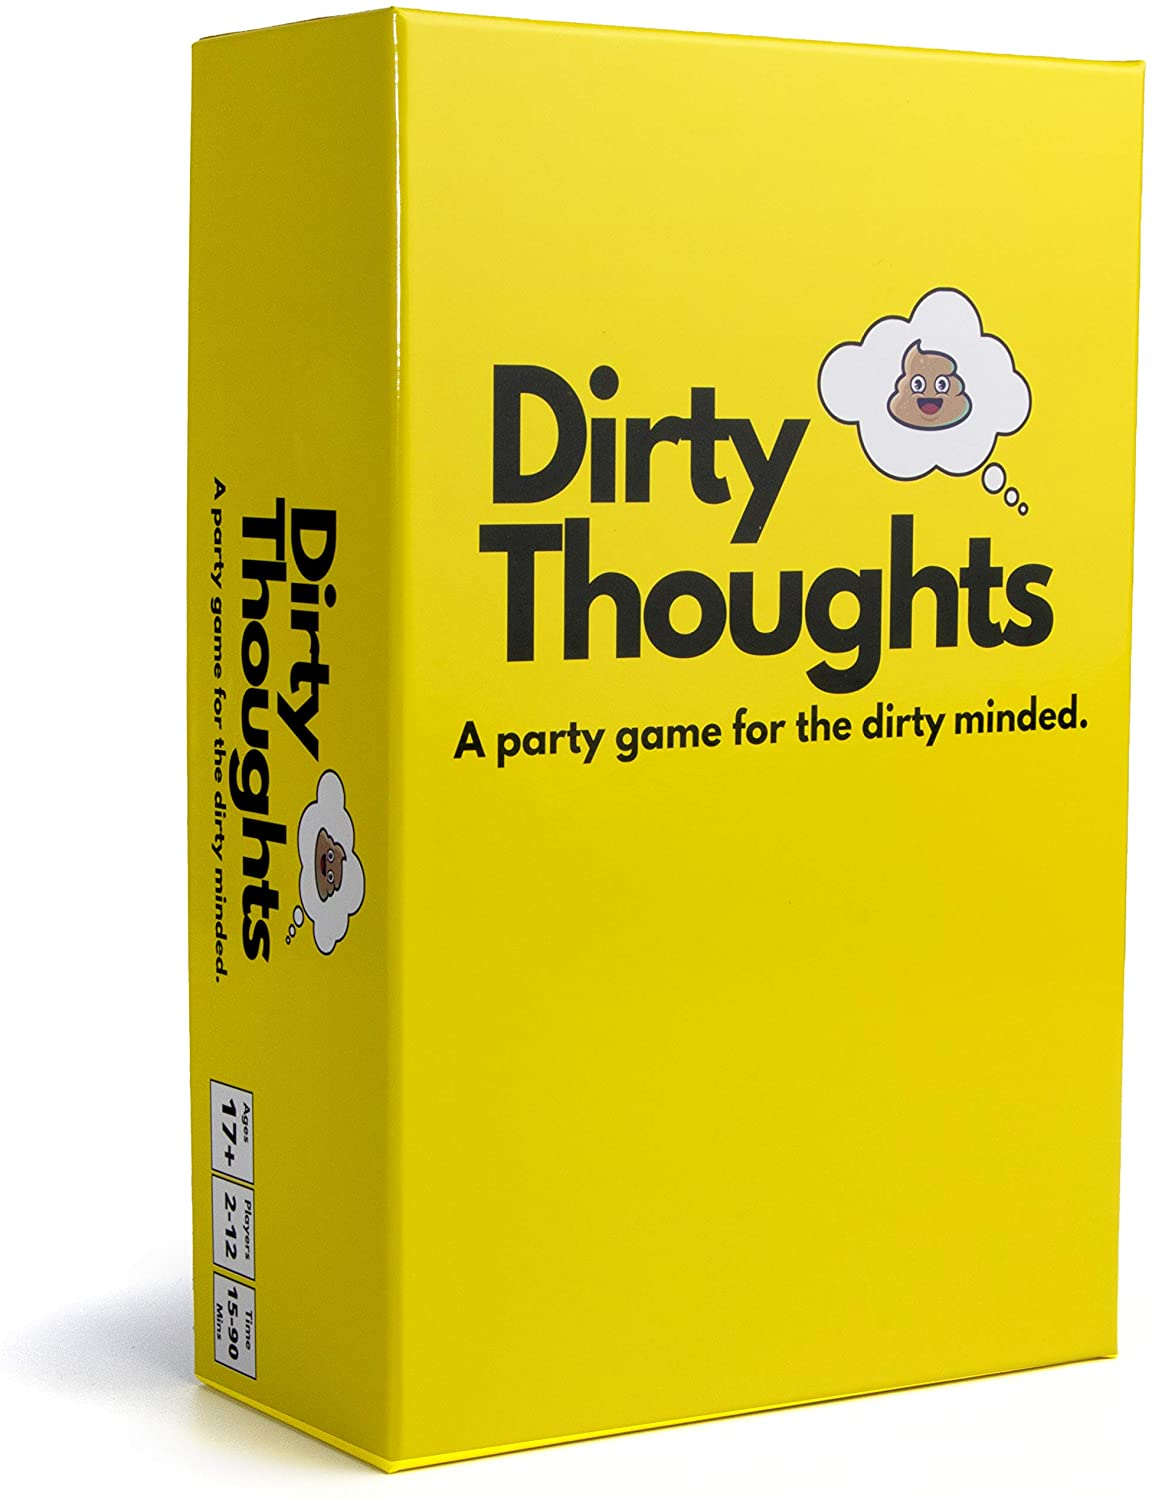 Dirty Thoughts Family Games for Teens and Adults - Top Adult Party Games - New Adult Board Games